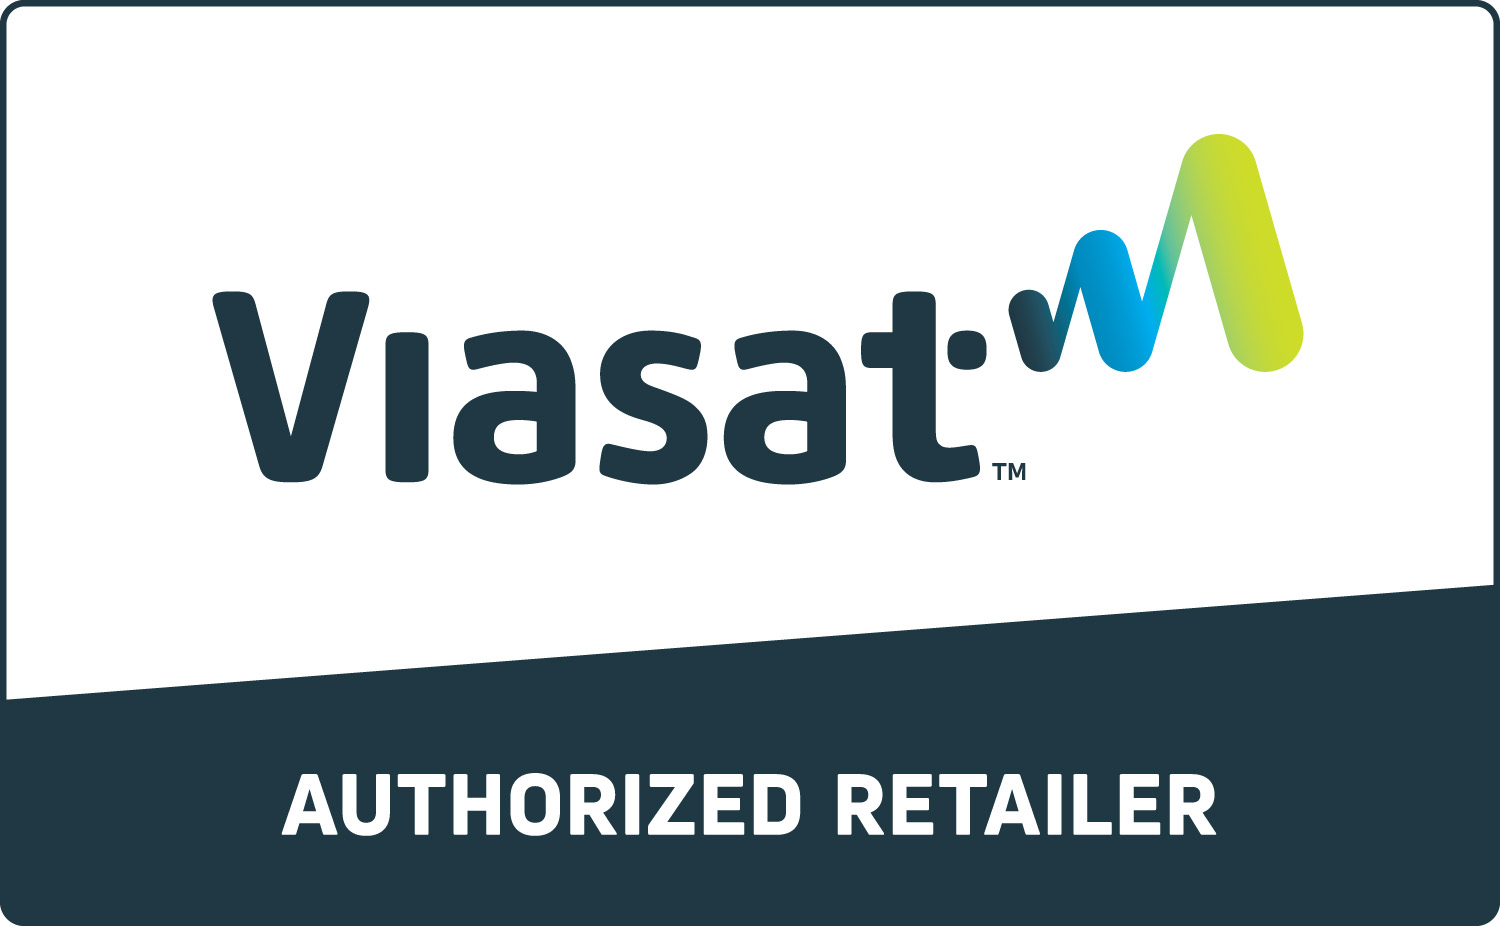 SCSV is an authorized retailer and installer for commercial Viasat services throughout Rhode Island including Jamestown, Block Island and other areas where it is difficults to get cable.